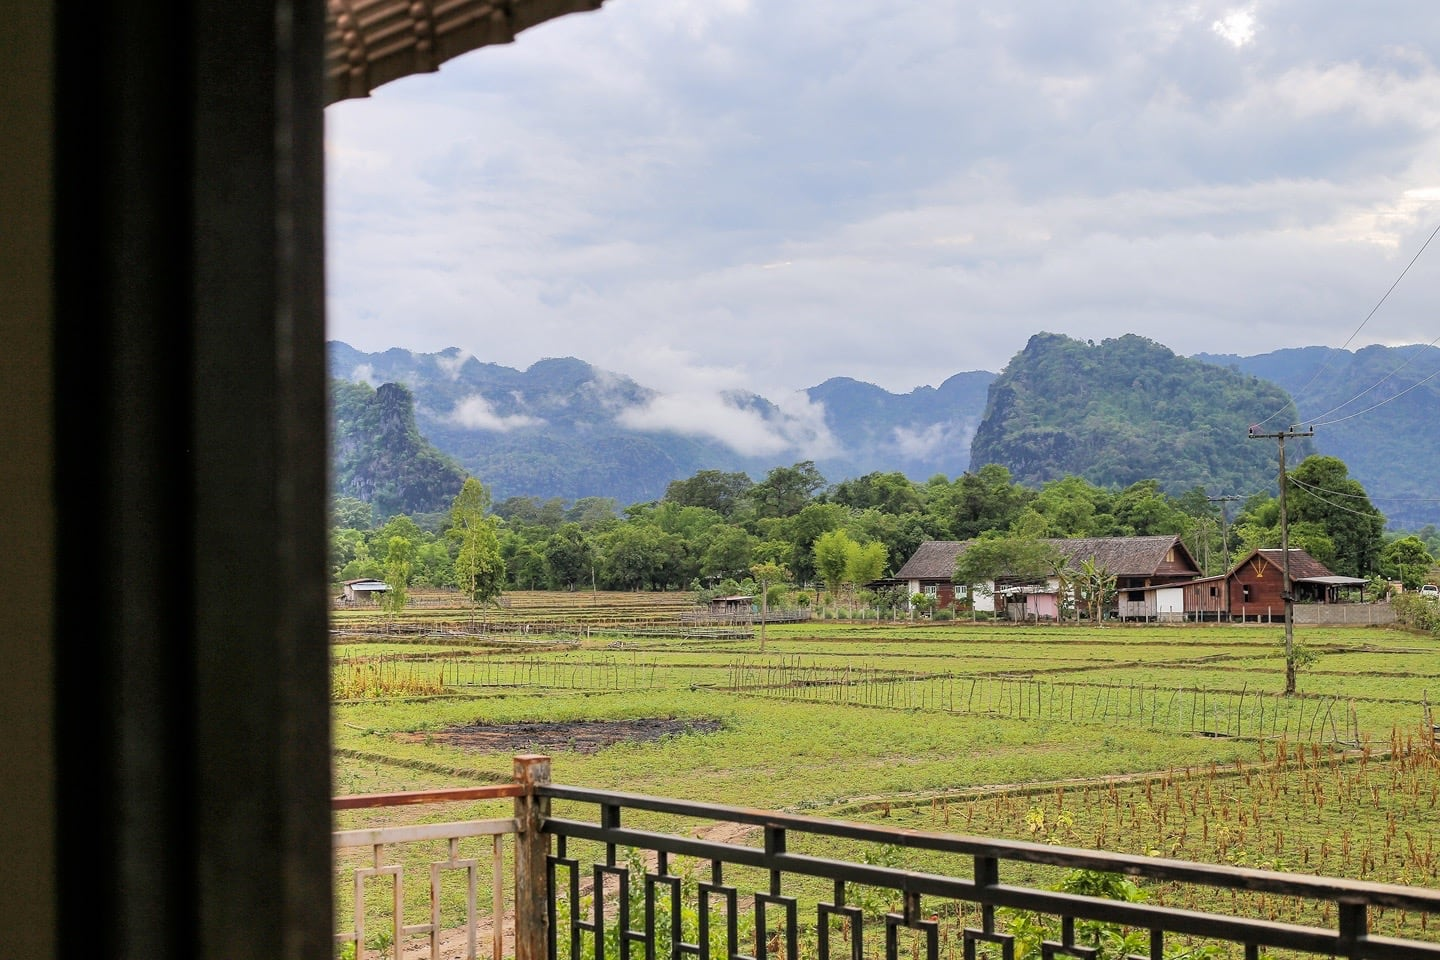 rice paddies in Ban O Laos